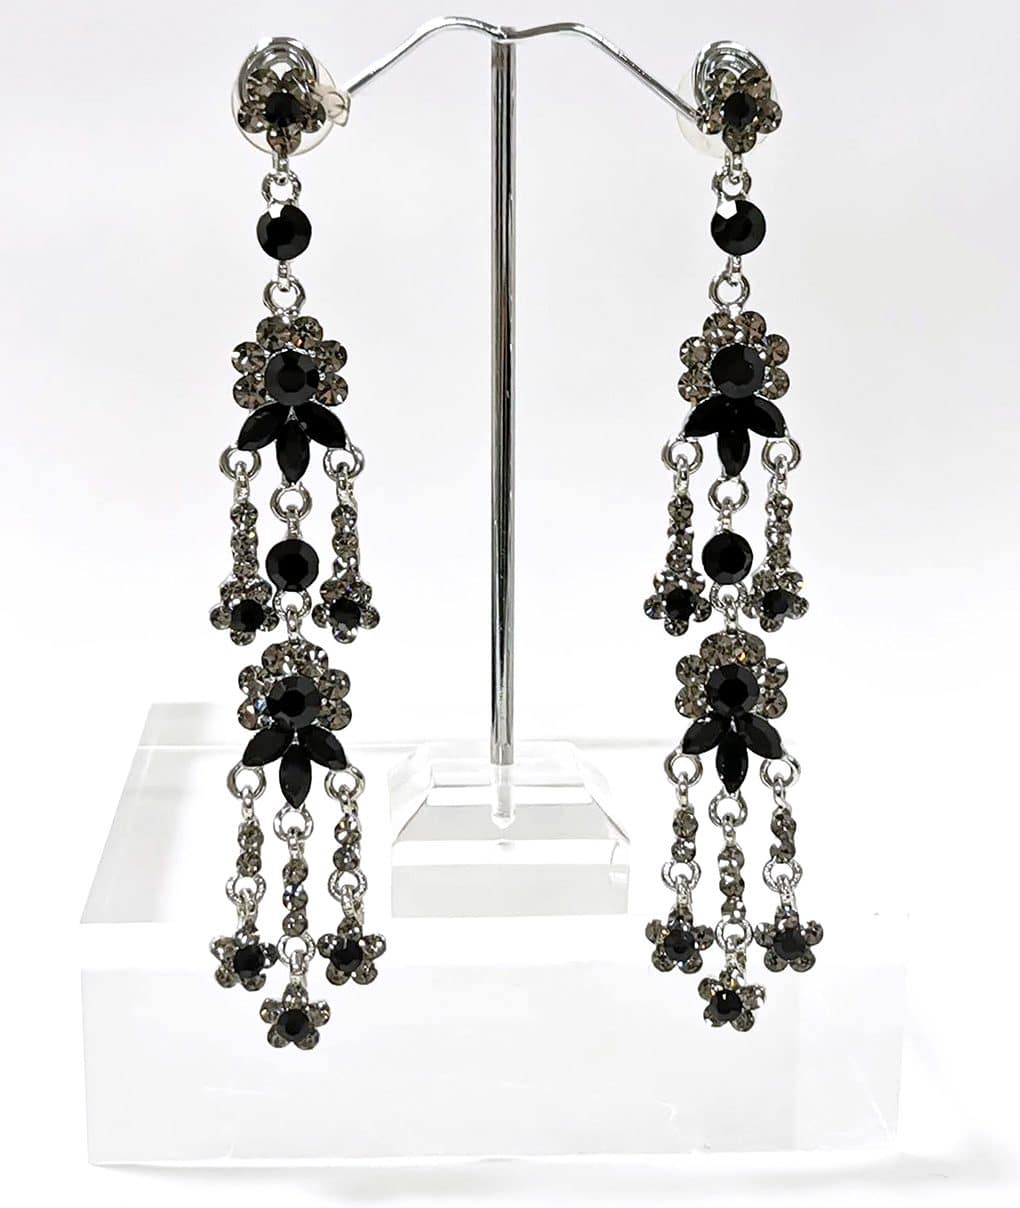 Black-grey-crystal-chandelier-earrings-Alila-Ireland